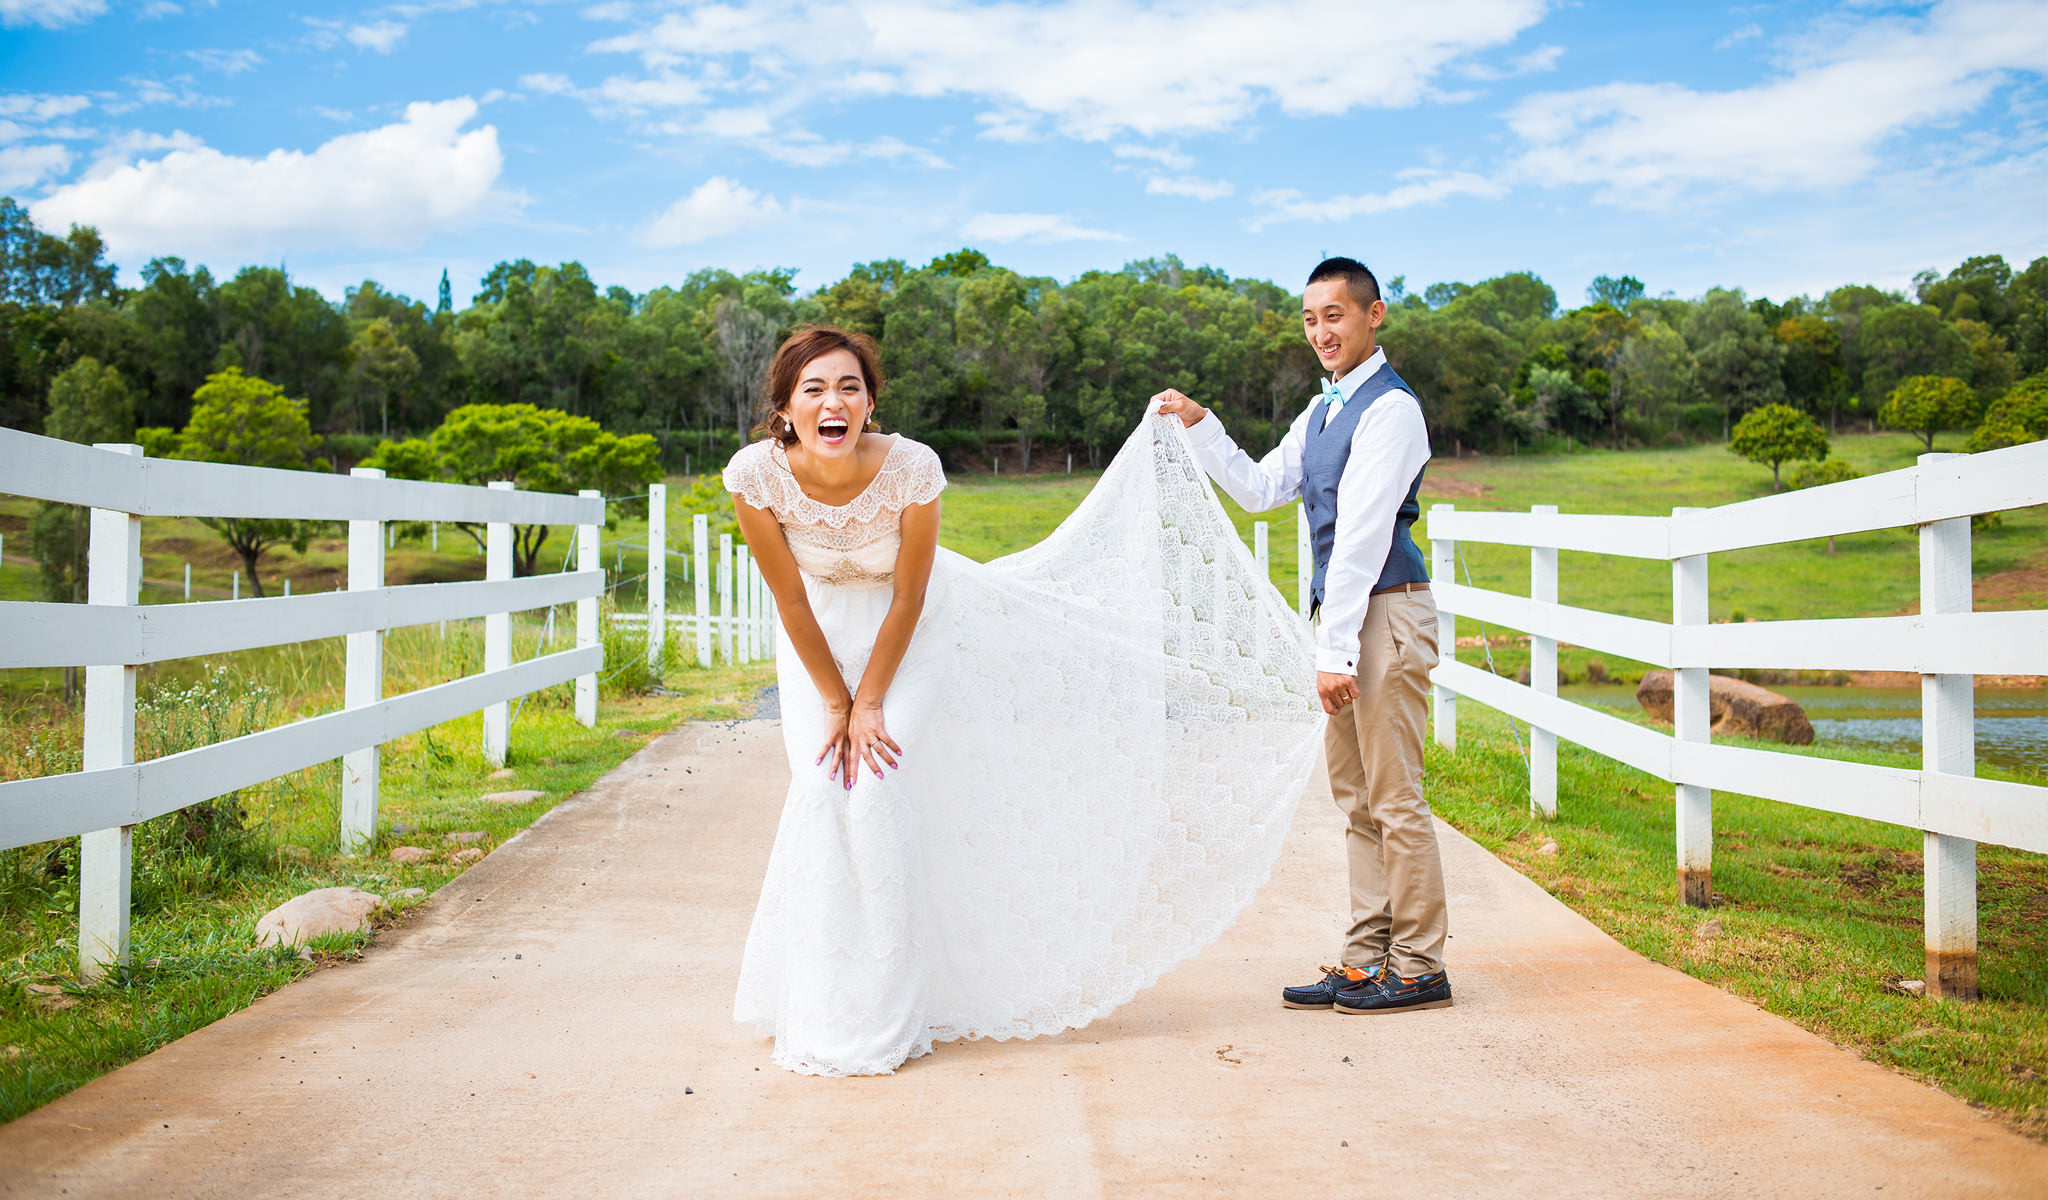 Groom lifting up bride's dress while she laughs